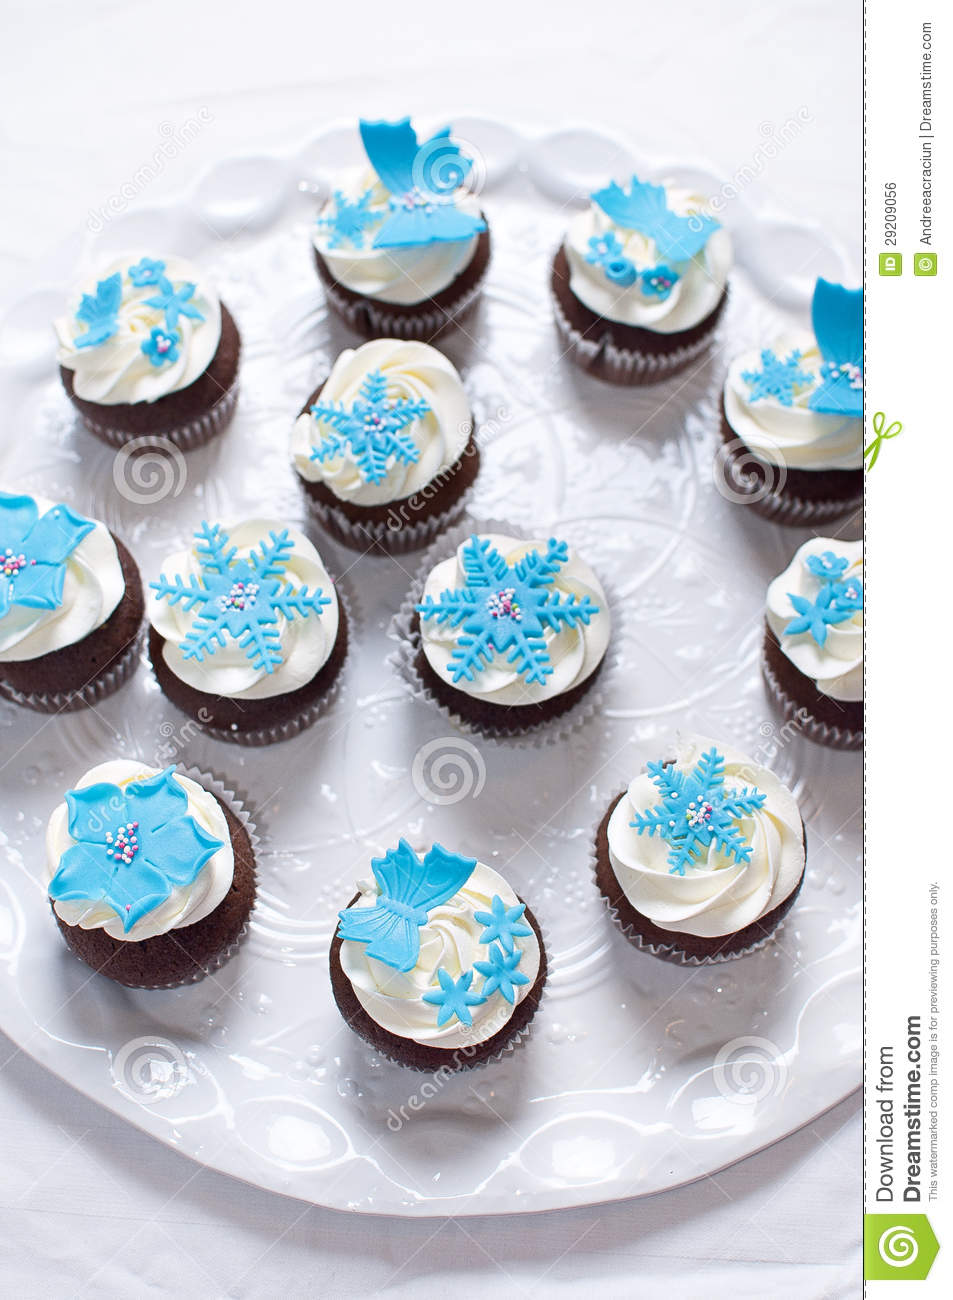 De winter cupcakes met de decoratie van de fondantjebloem for Decoratie cupcakes